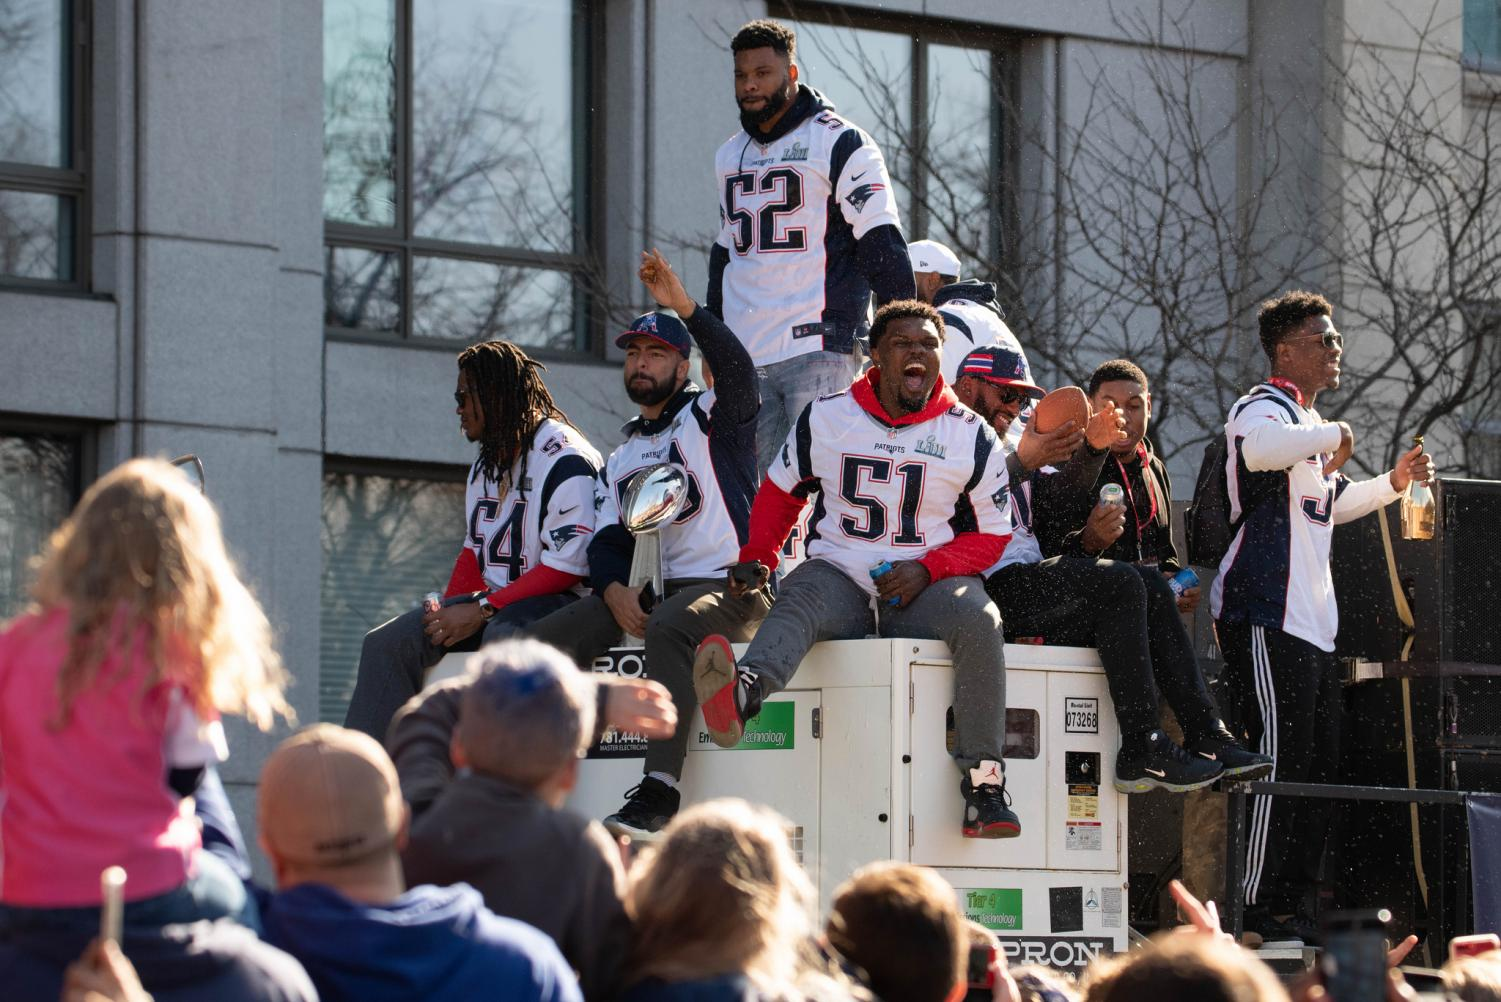 The Patriots celebrating their victory.